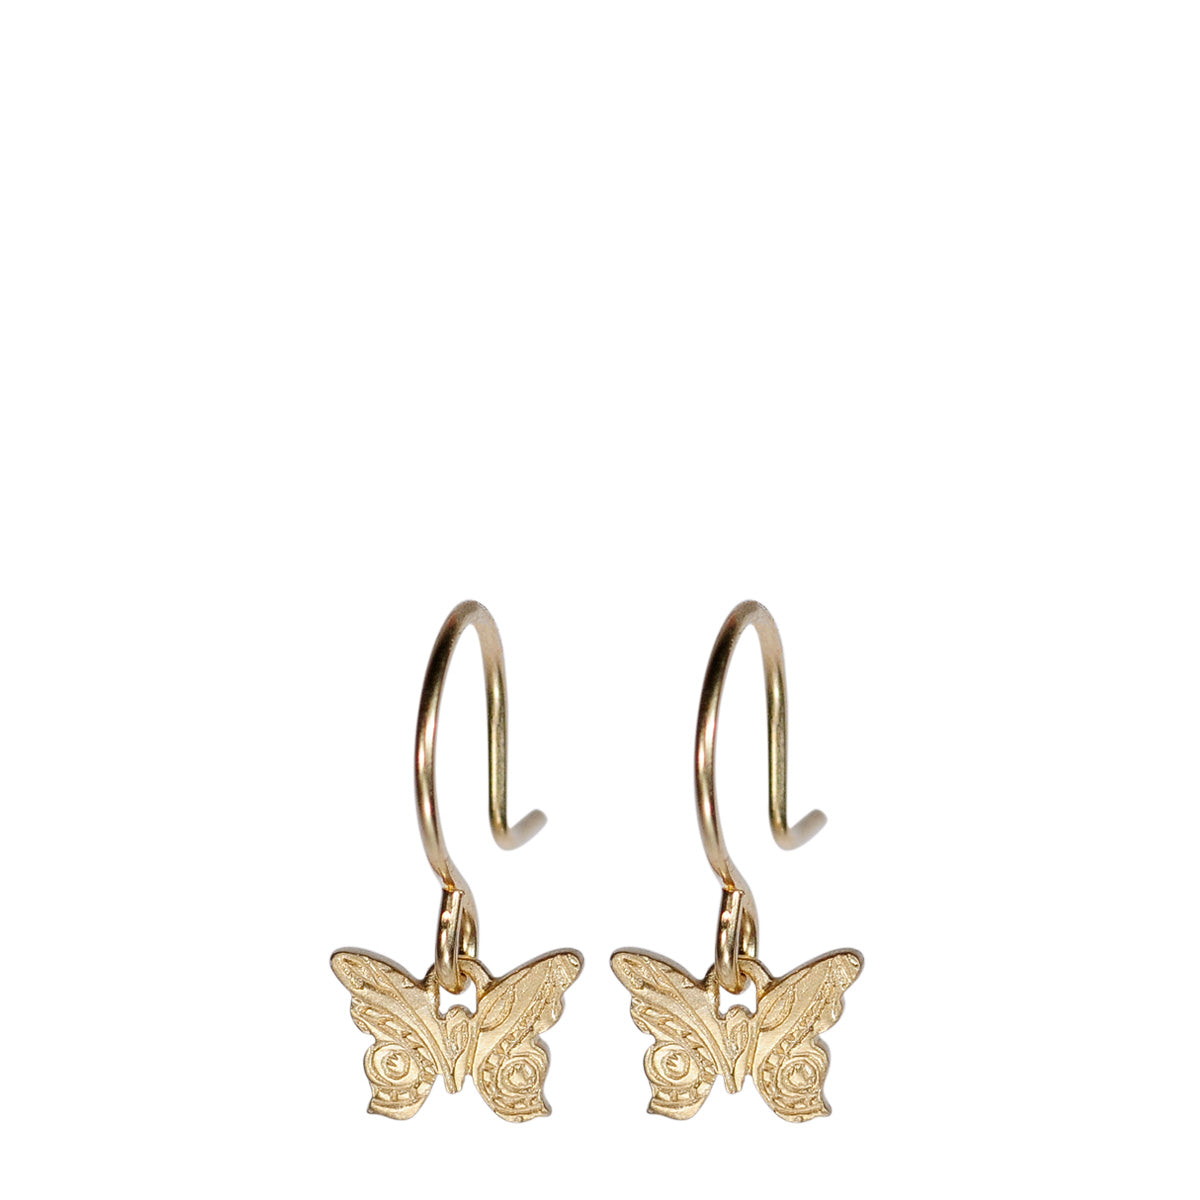 10K Gold Small Paisley Butterfly Earrings